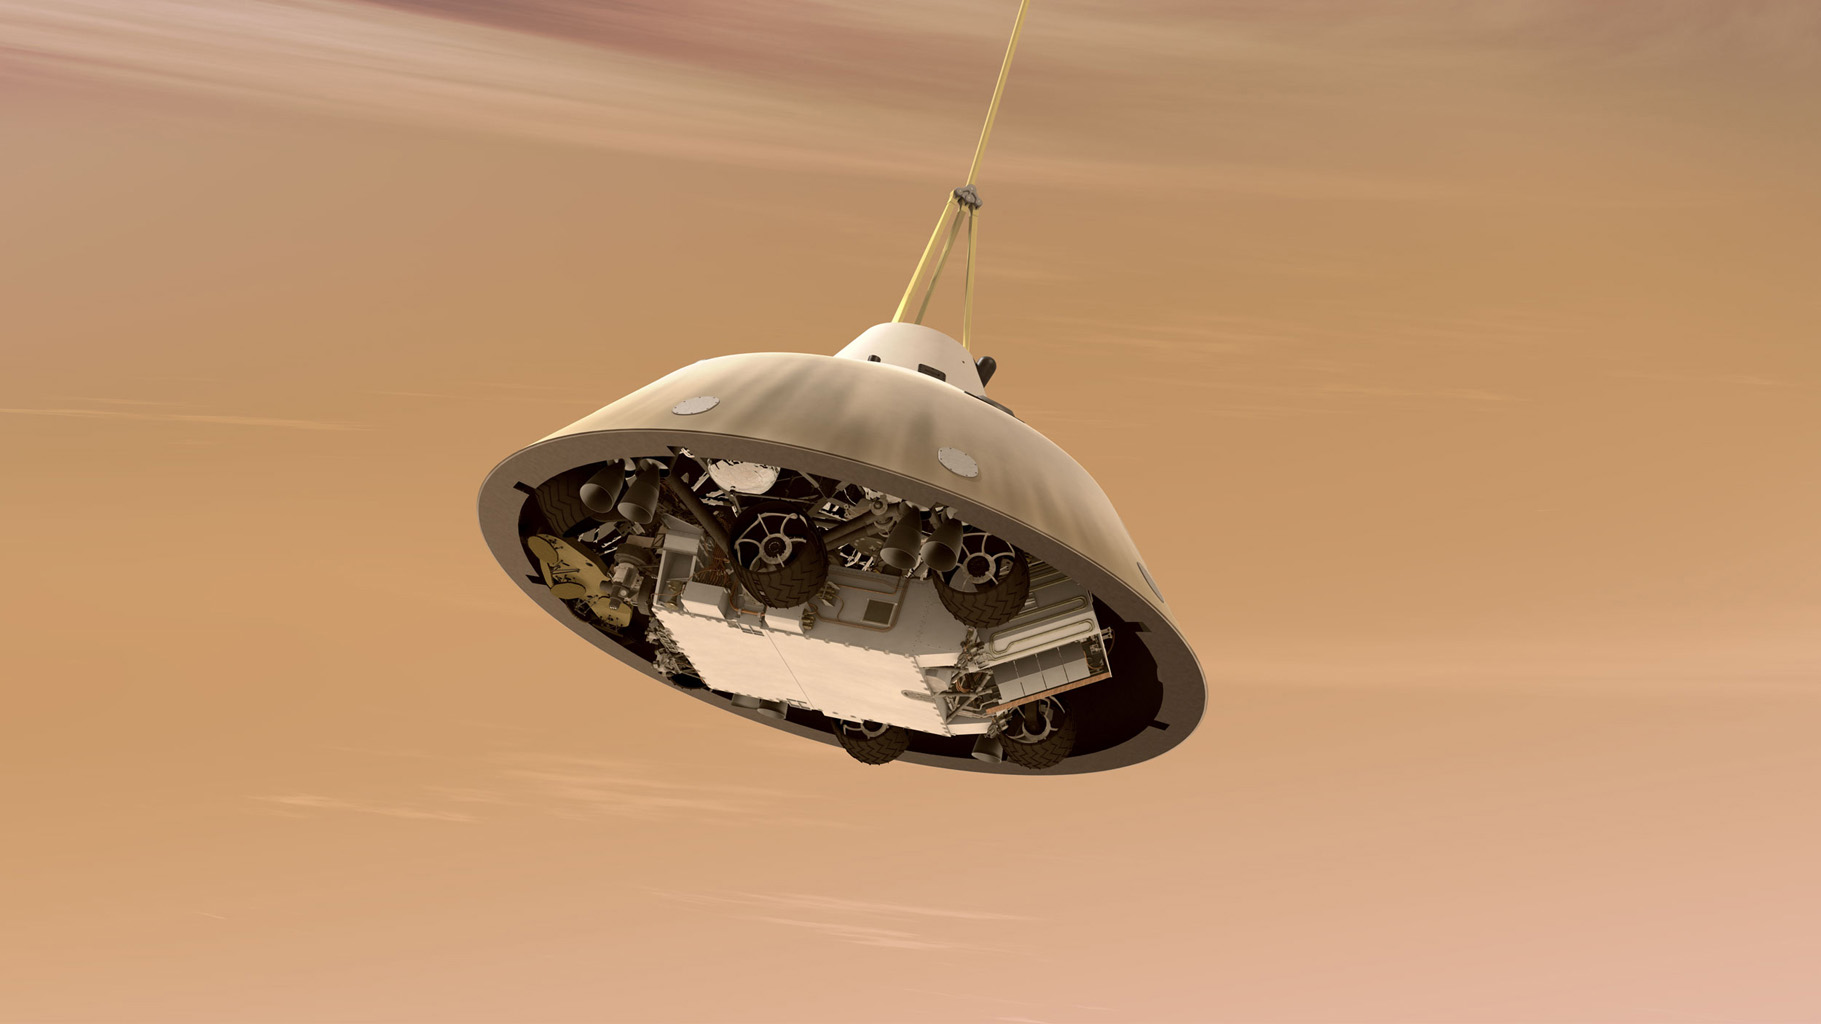 Space Images | Curiosity While on Parachute, Artist's Concept